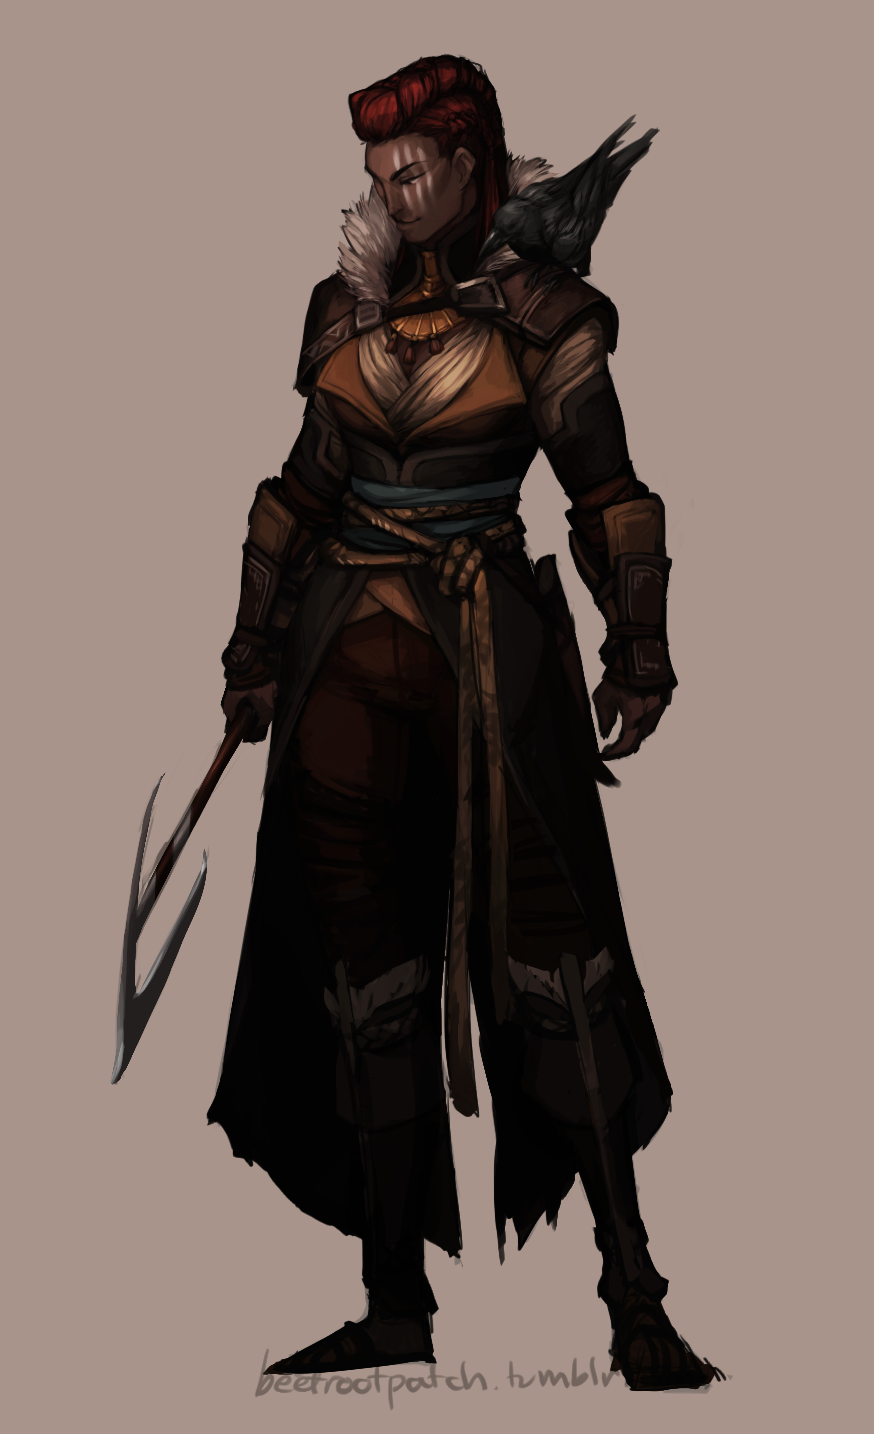 sock's gw2 blog — Put together an in-game outfit for Gunhild, so